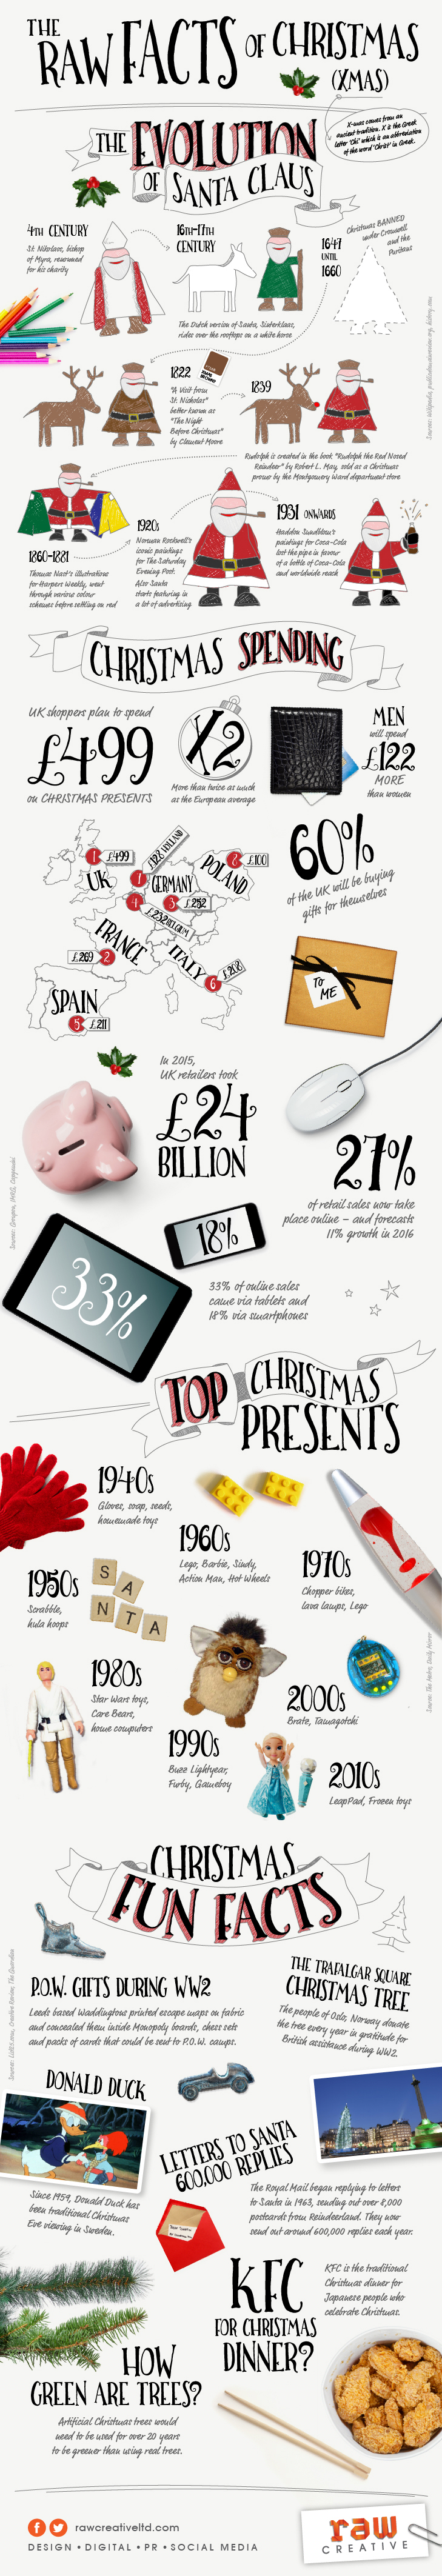 The Raw Facts of Christmas infographic